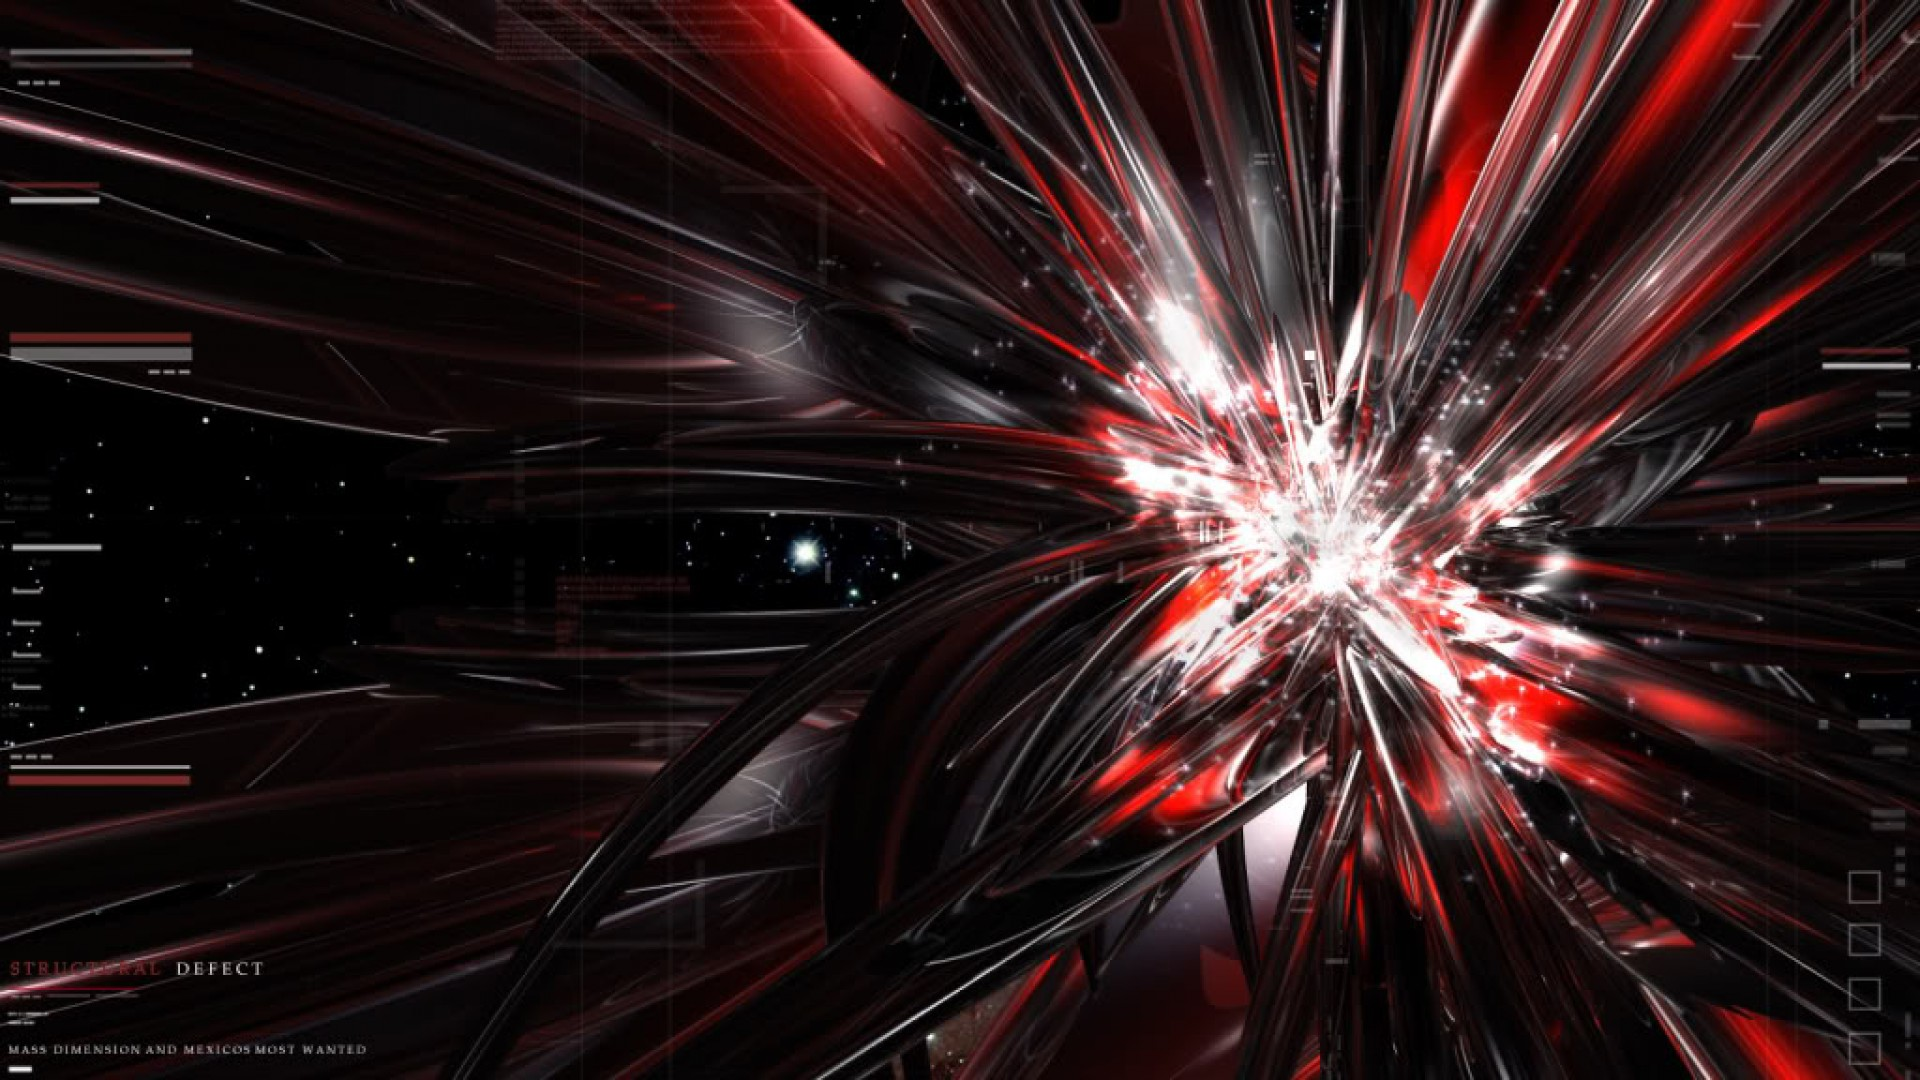 Spiderman red and black wallpaper Abstract Red wallpaper abstract red 1920x1080